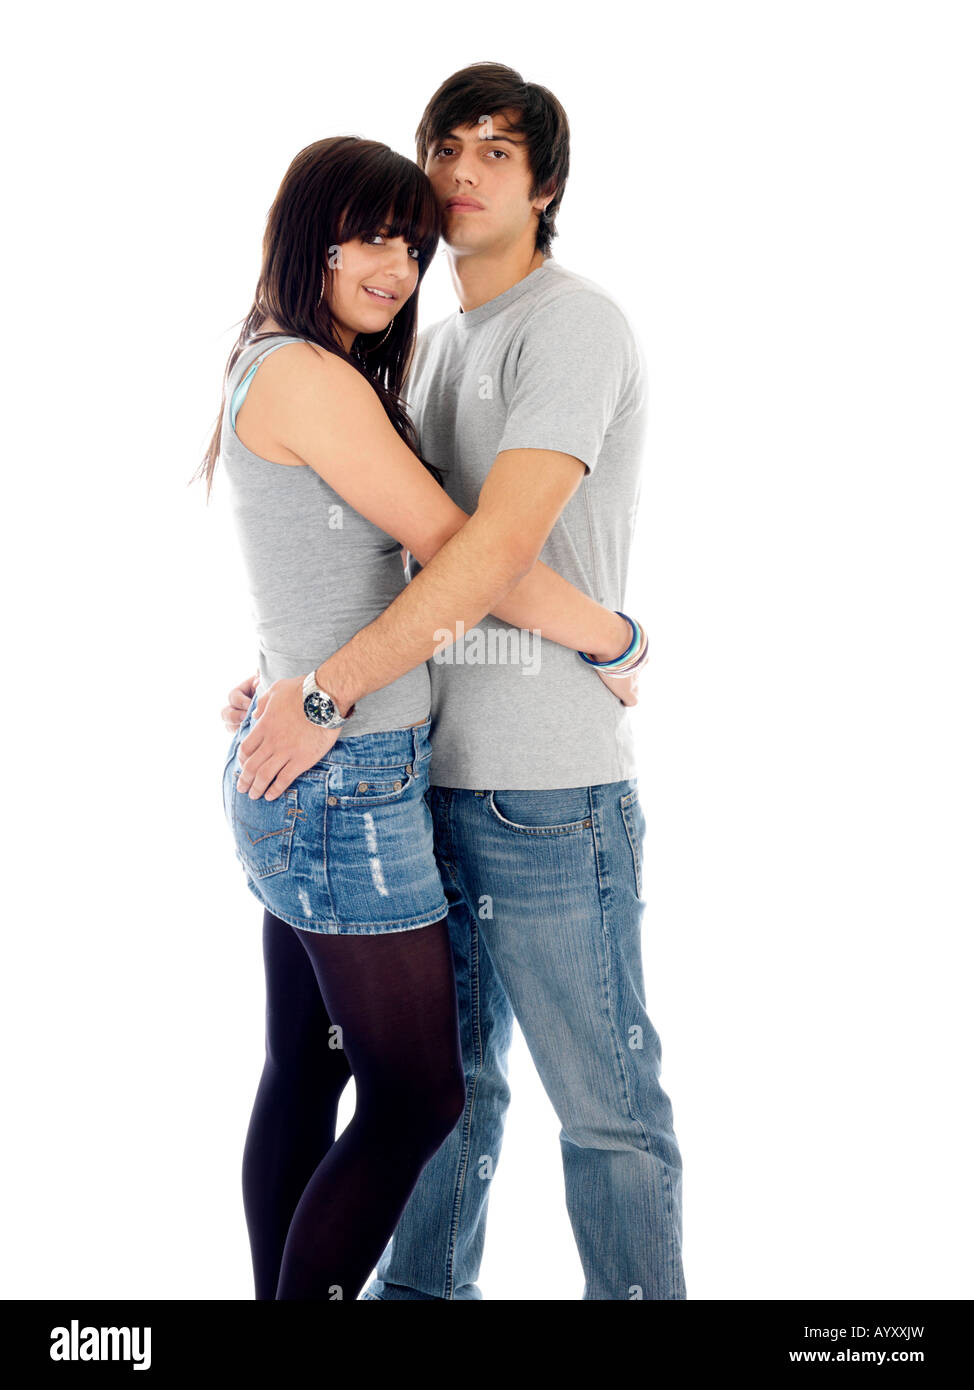 Happy Young Couple Hugging Models Released. Happy Young Couple Hugging Models Released Stock Photo  Royalty